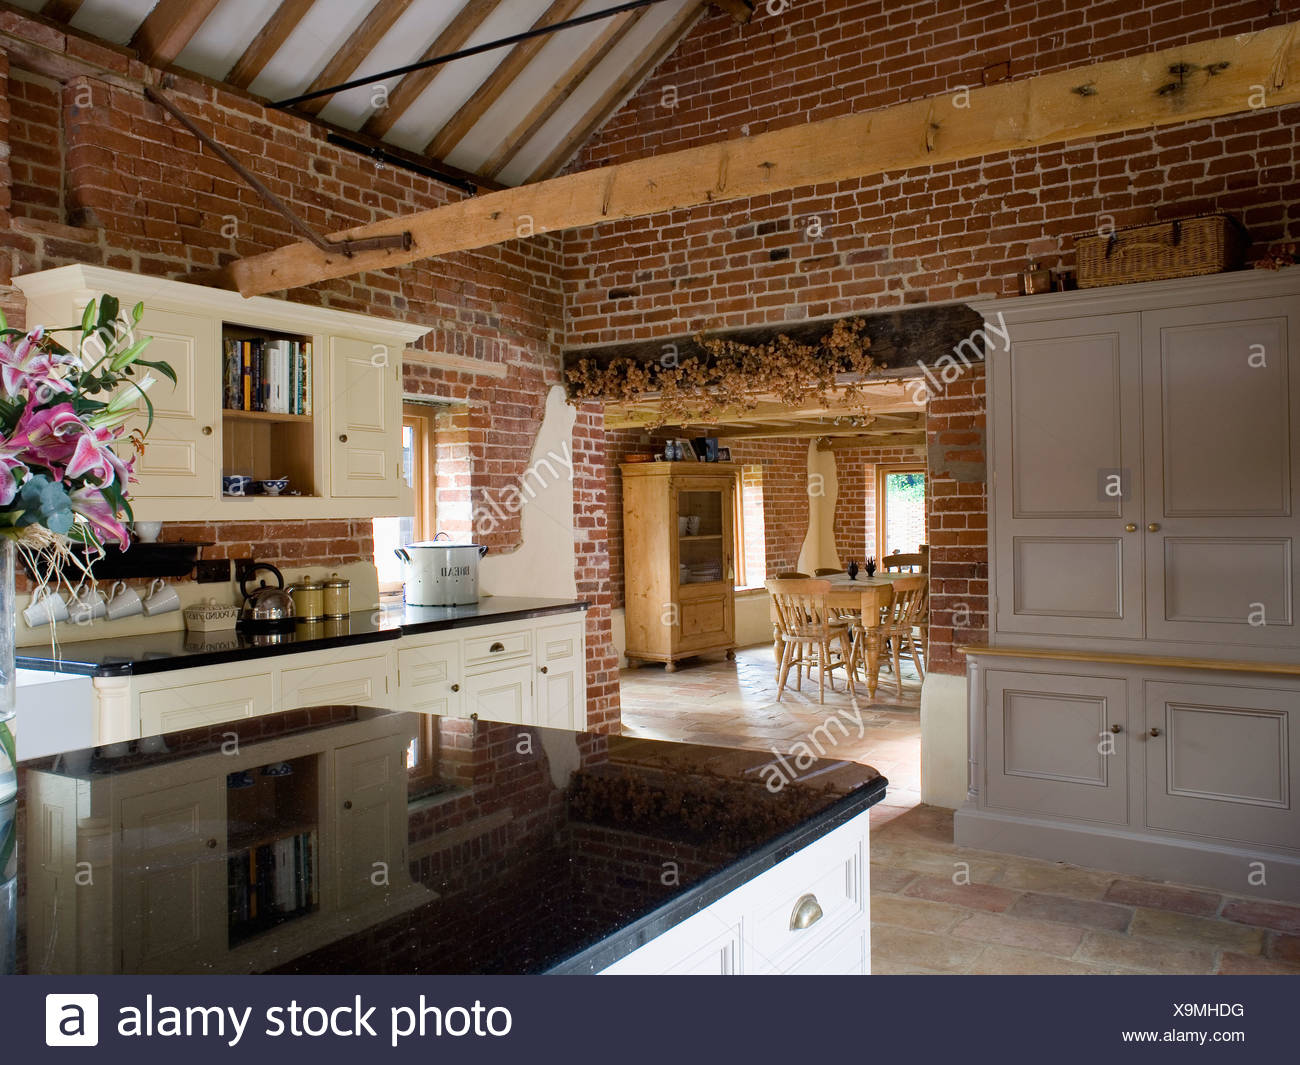 Dresser Beside Open Doorway In Large Barn Conversion Kitchen With Exposed  Brick Walls And Wooden Ceiling Beams